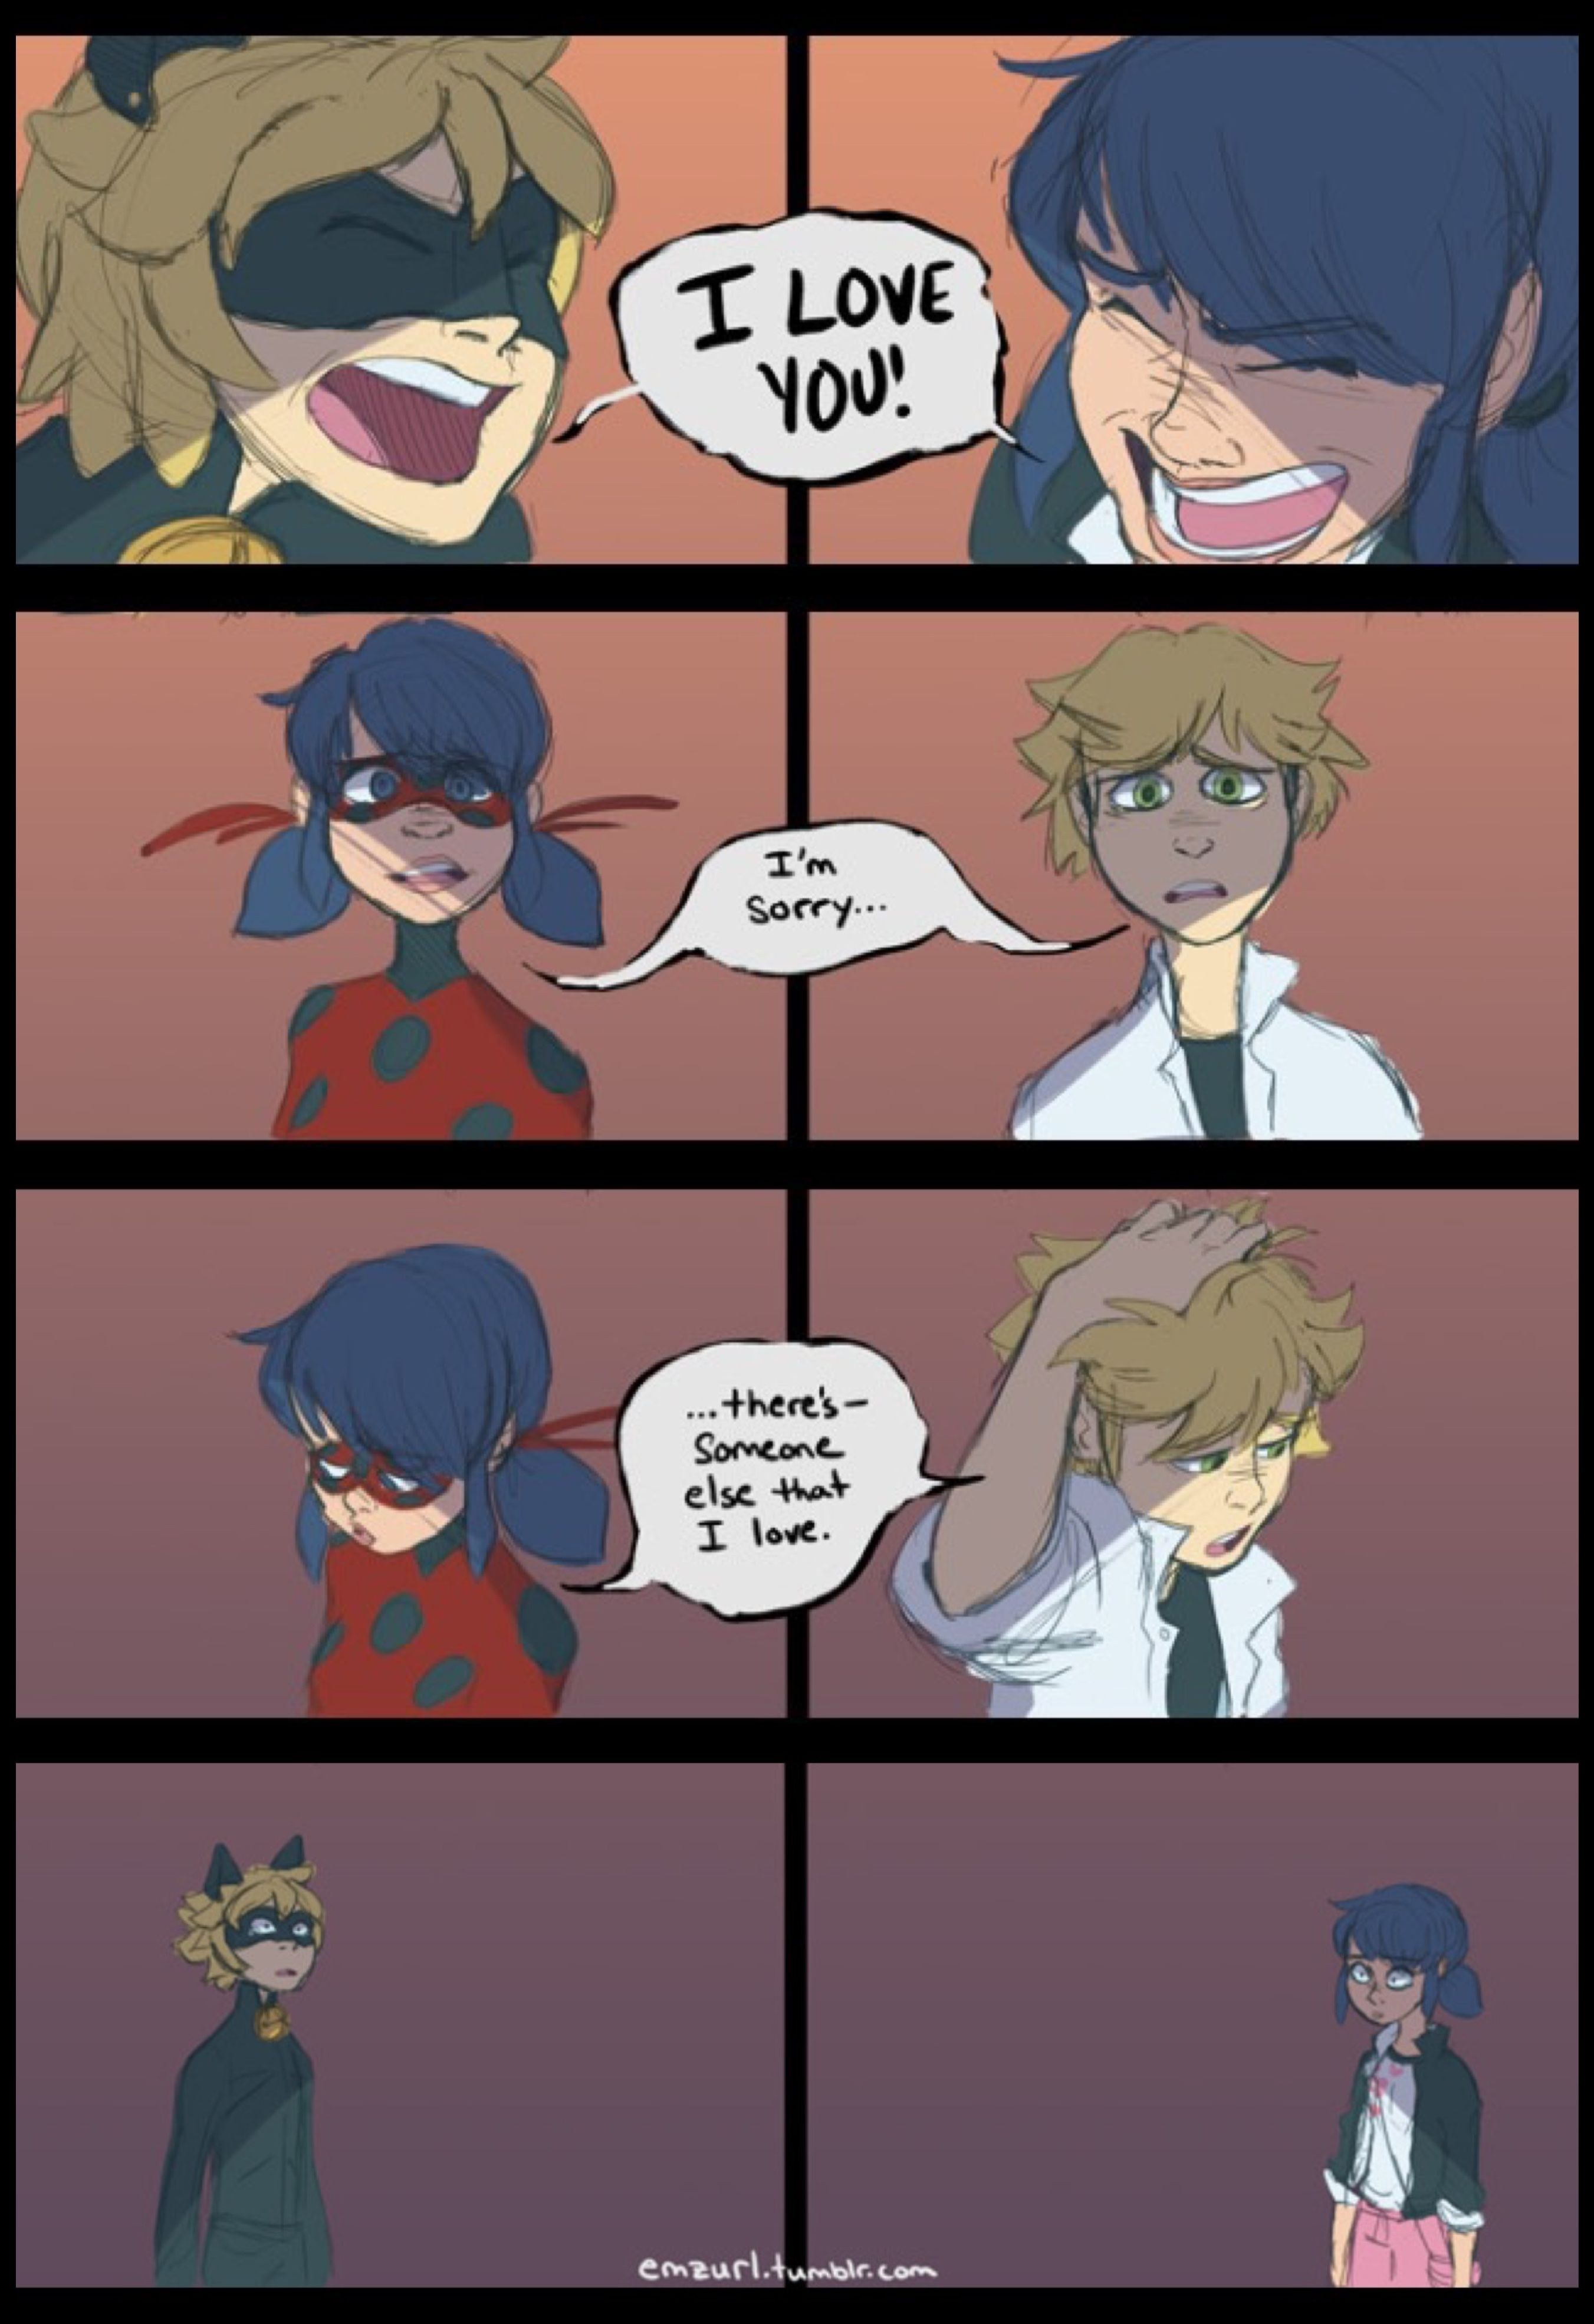 Adrien Video Porno Gay Dfe Miracoulus pin on miraculous tales of ladybug and cat noir